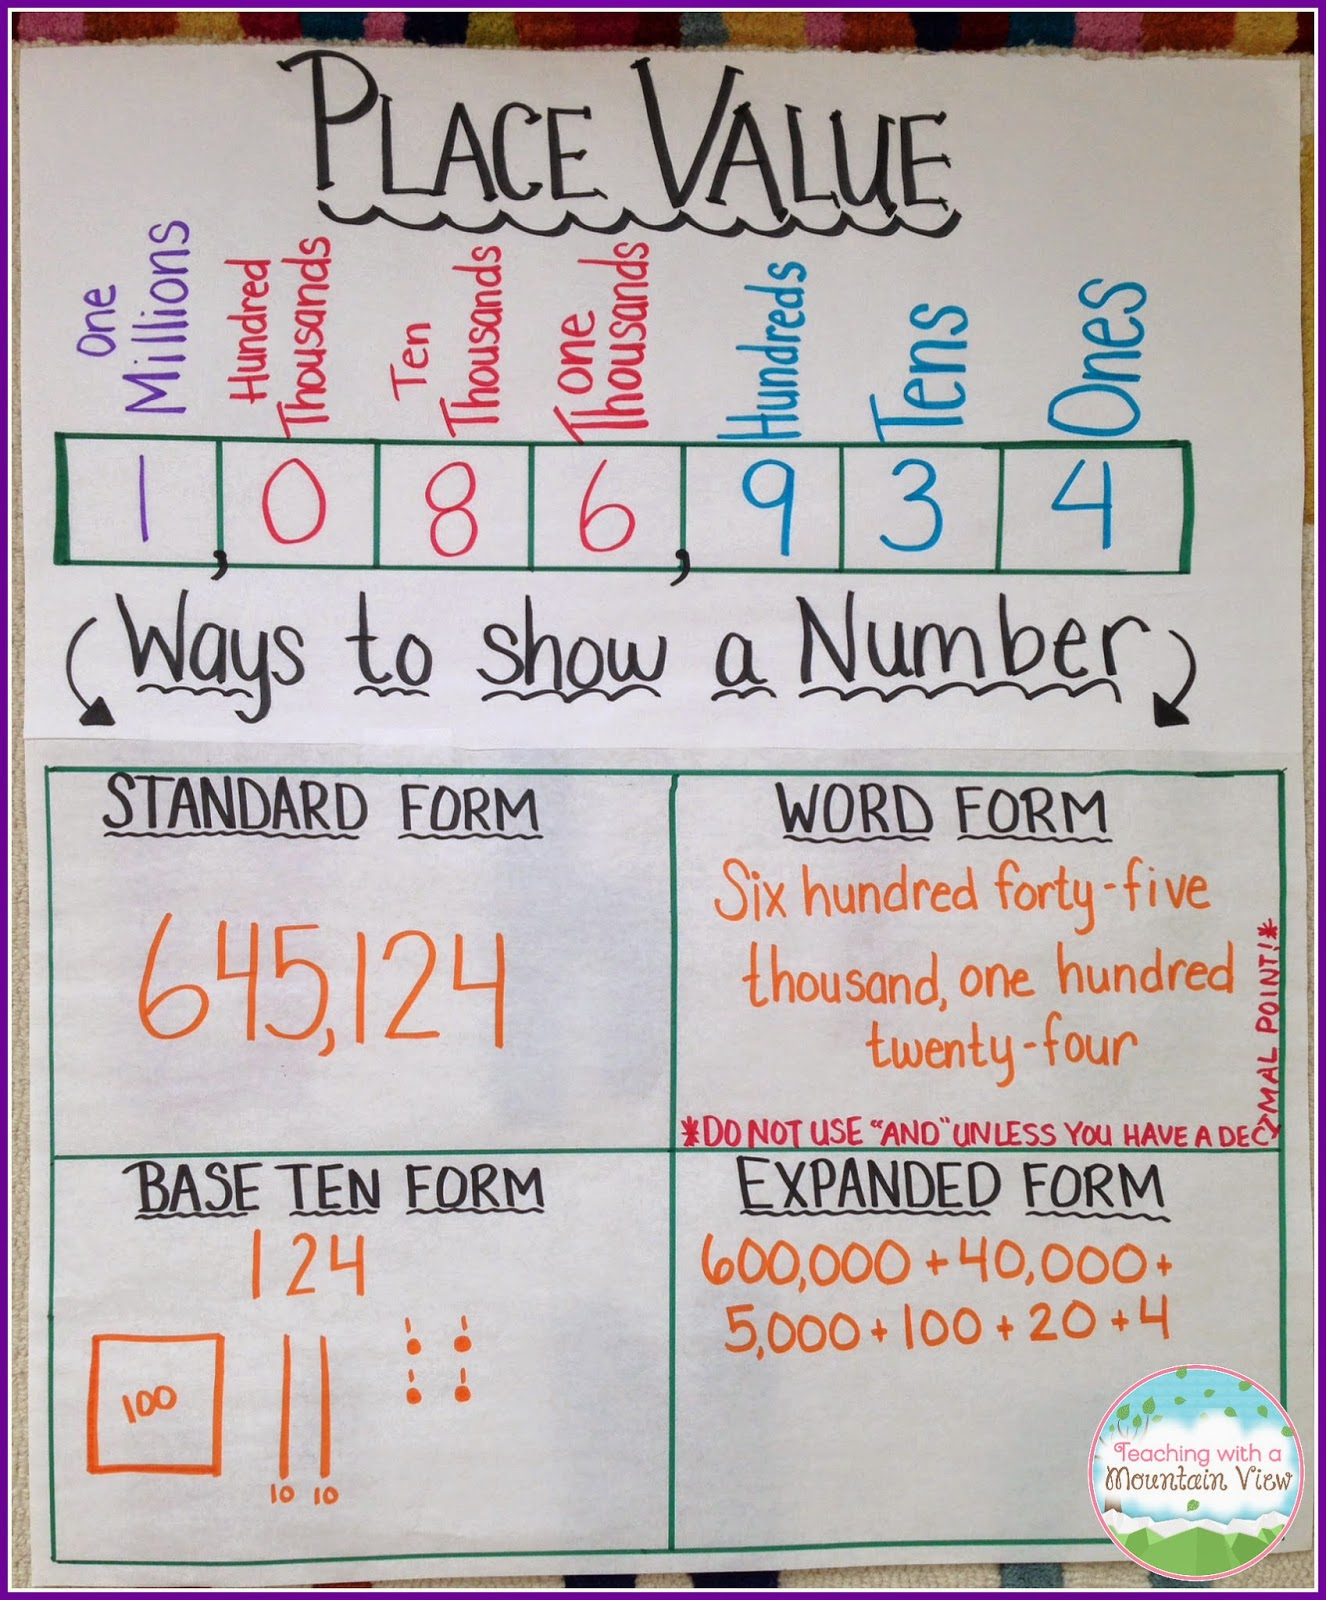 Place Value - Lessons - Tes Teach